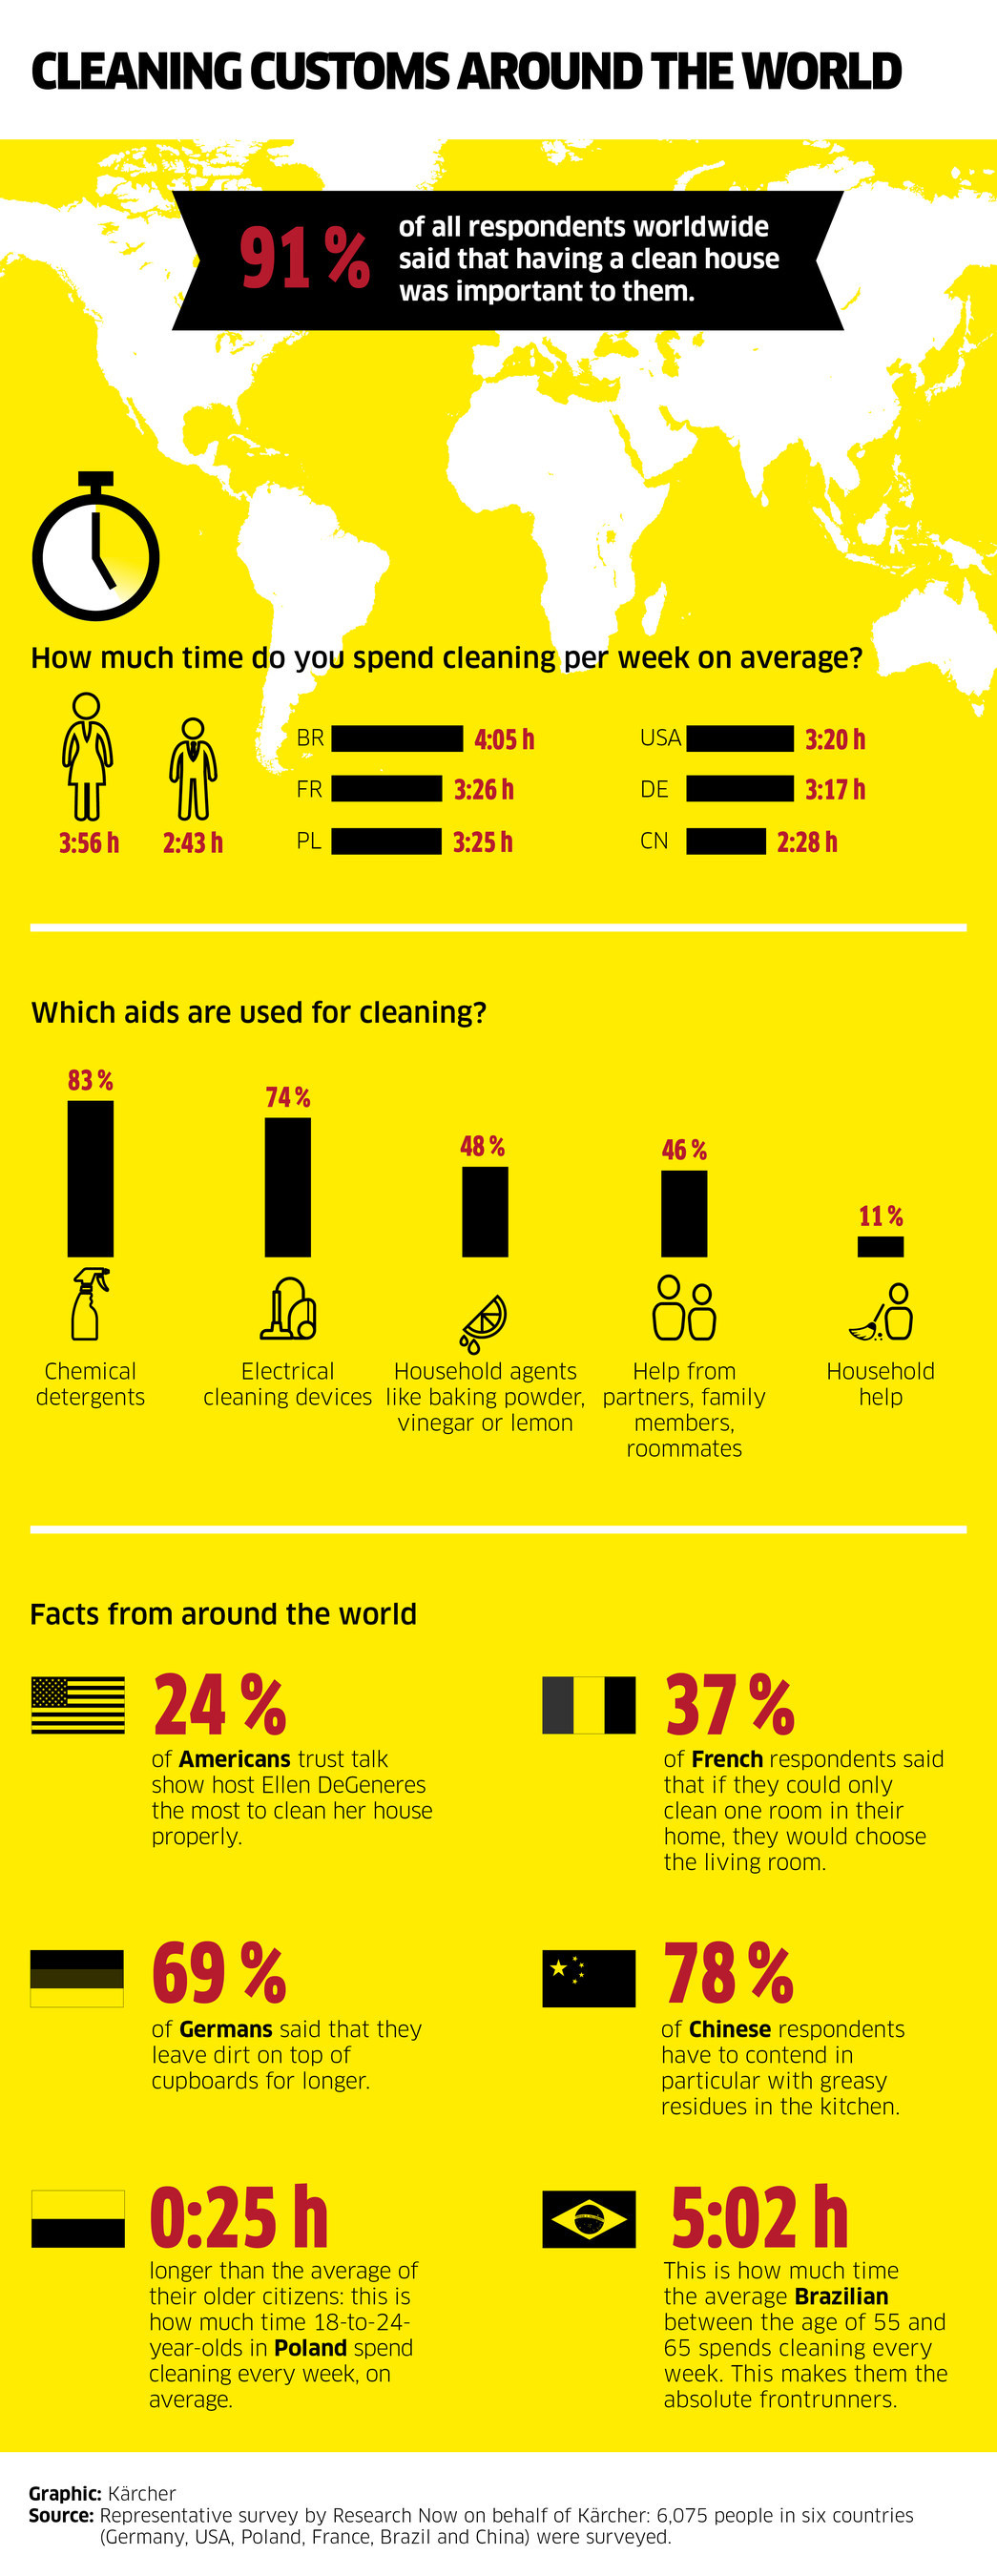 In a representative online survey, people from the following countries were surveyed: Brazil, China, Germany, France, USA and Poland. Around the world, chemical cleaners and electrical cleaning appliances are the most commonly used cleaning aids.